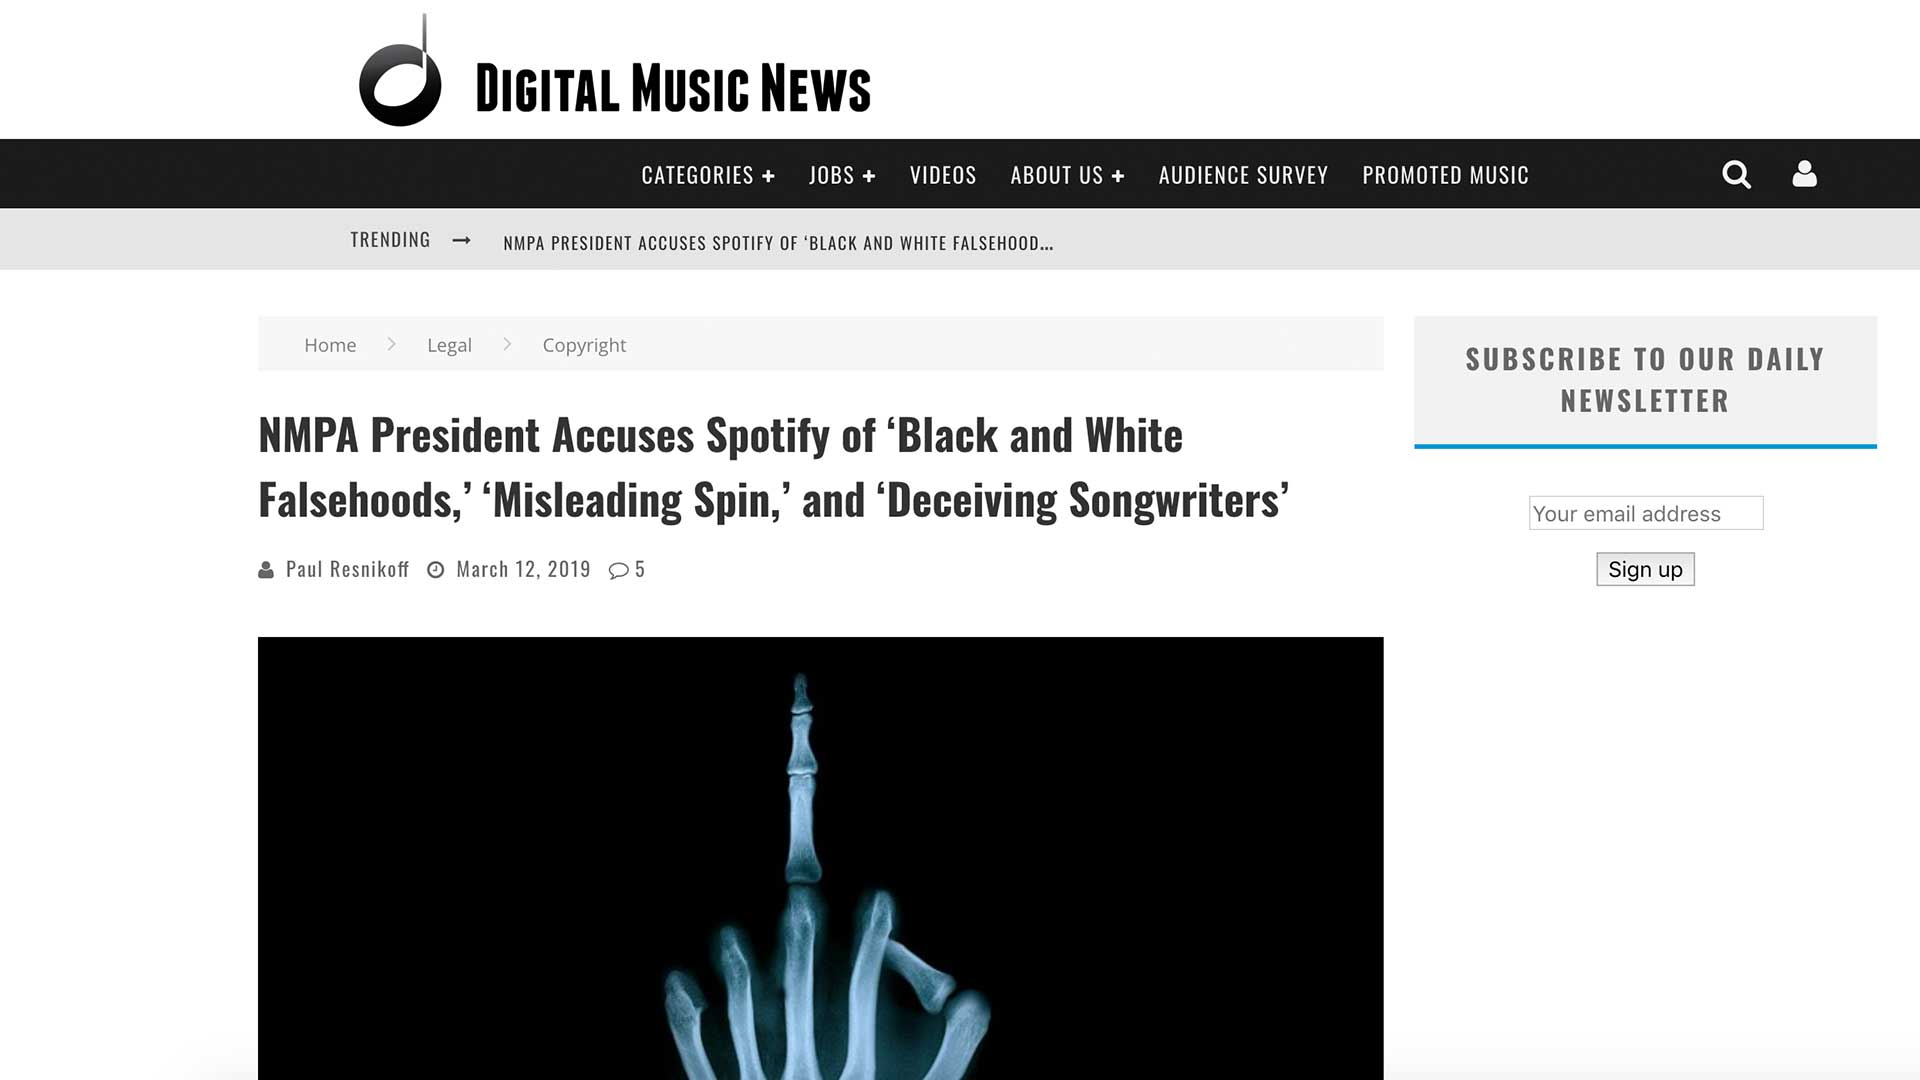 Fairness Rocks News NMPA President Accuses Spotify of 'Black and White Falsehoods,' 'Misleading Spin,' and 'Deceiving Songwriters'